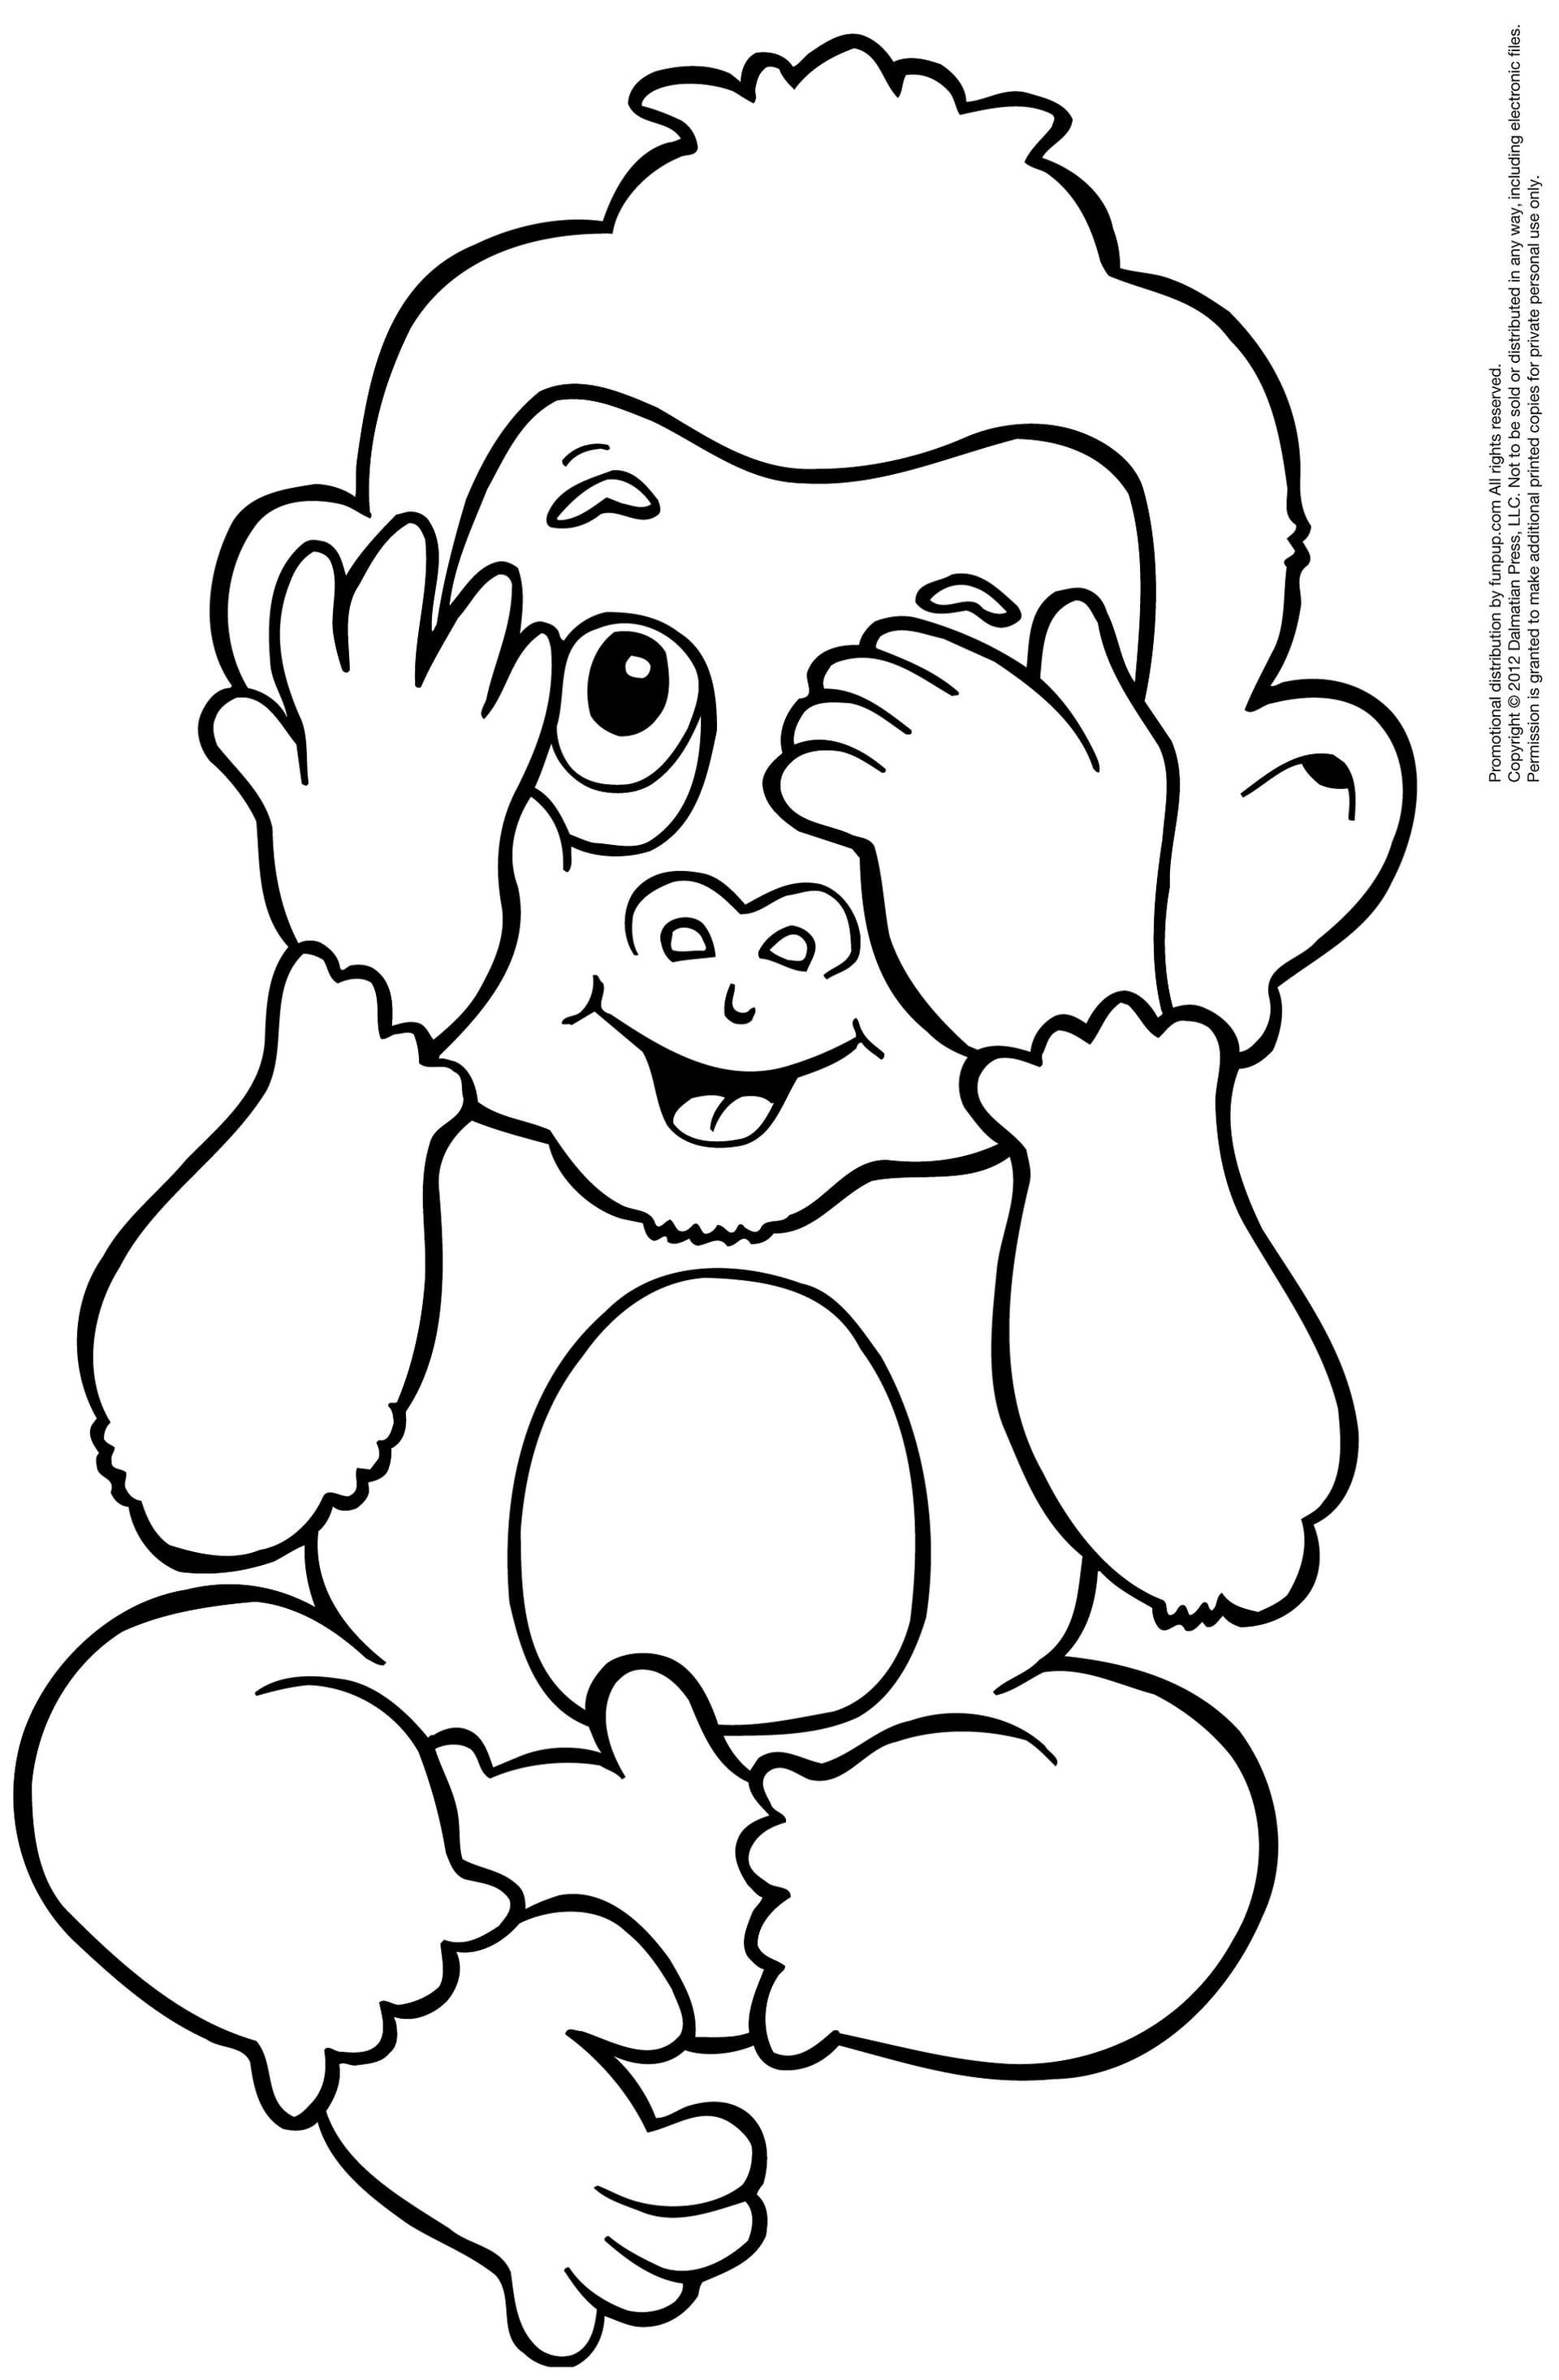 colouring pictures of monkeys free printable monkey coloring pages for kids monkeys pictures of colouring